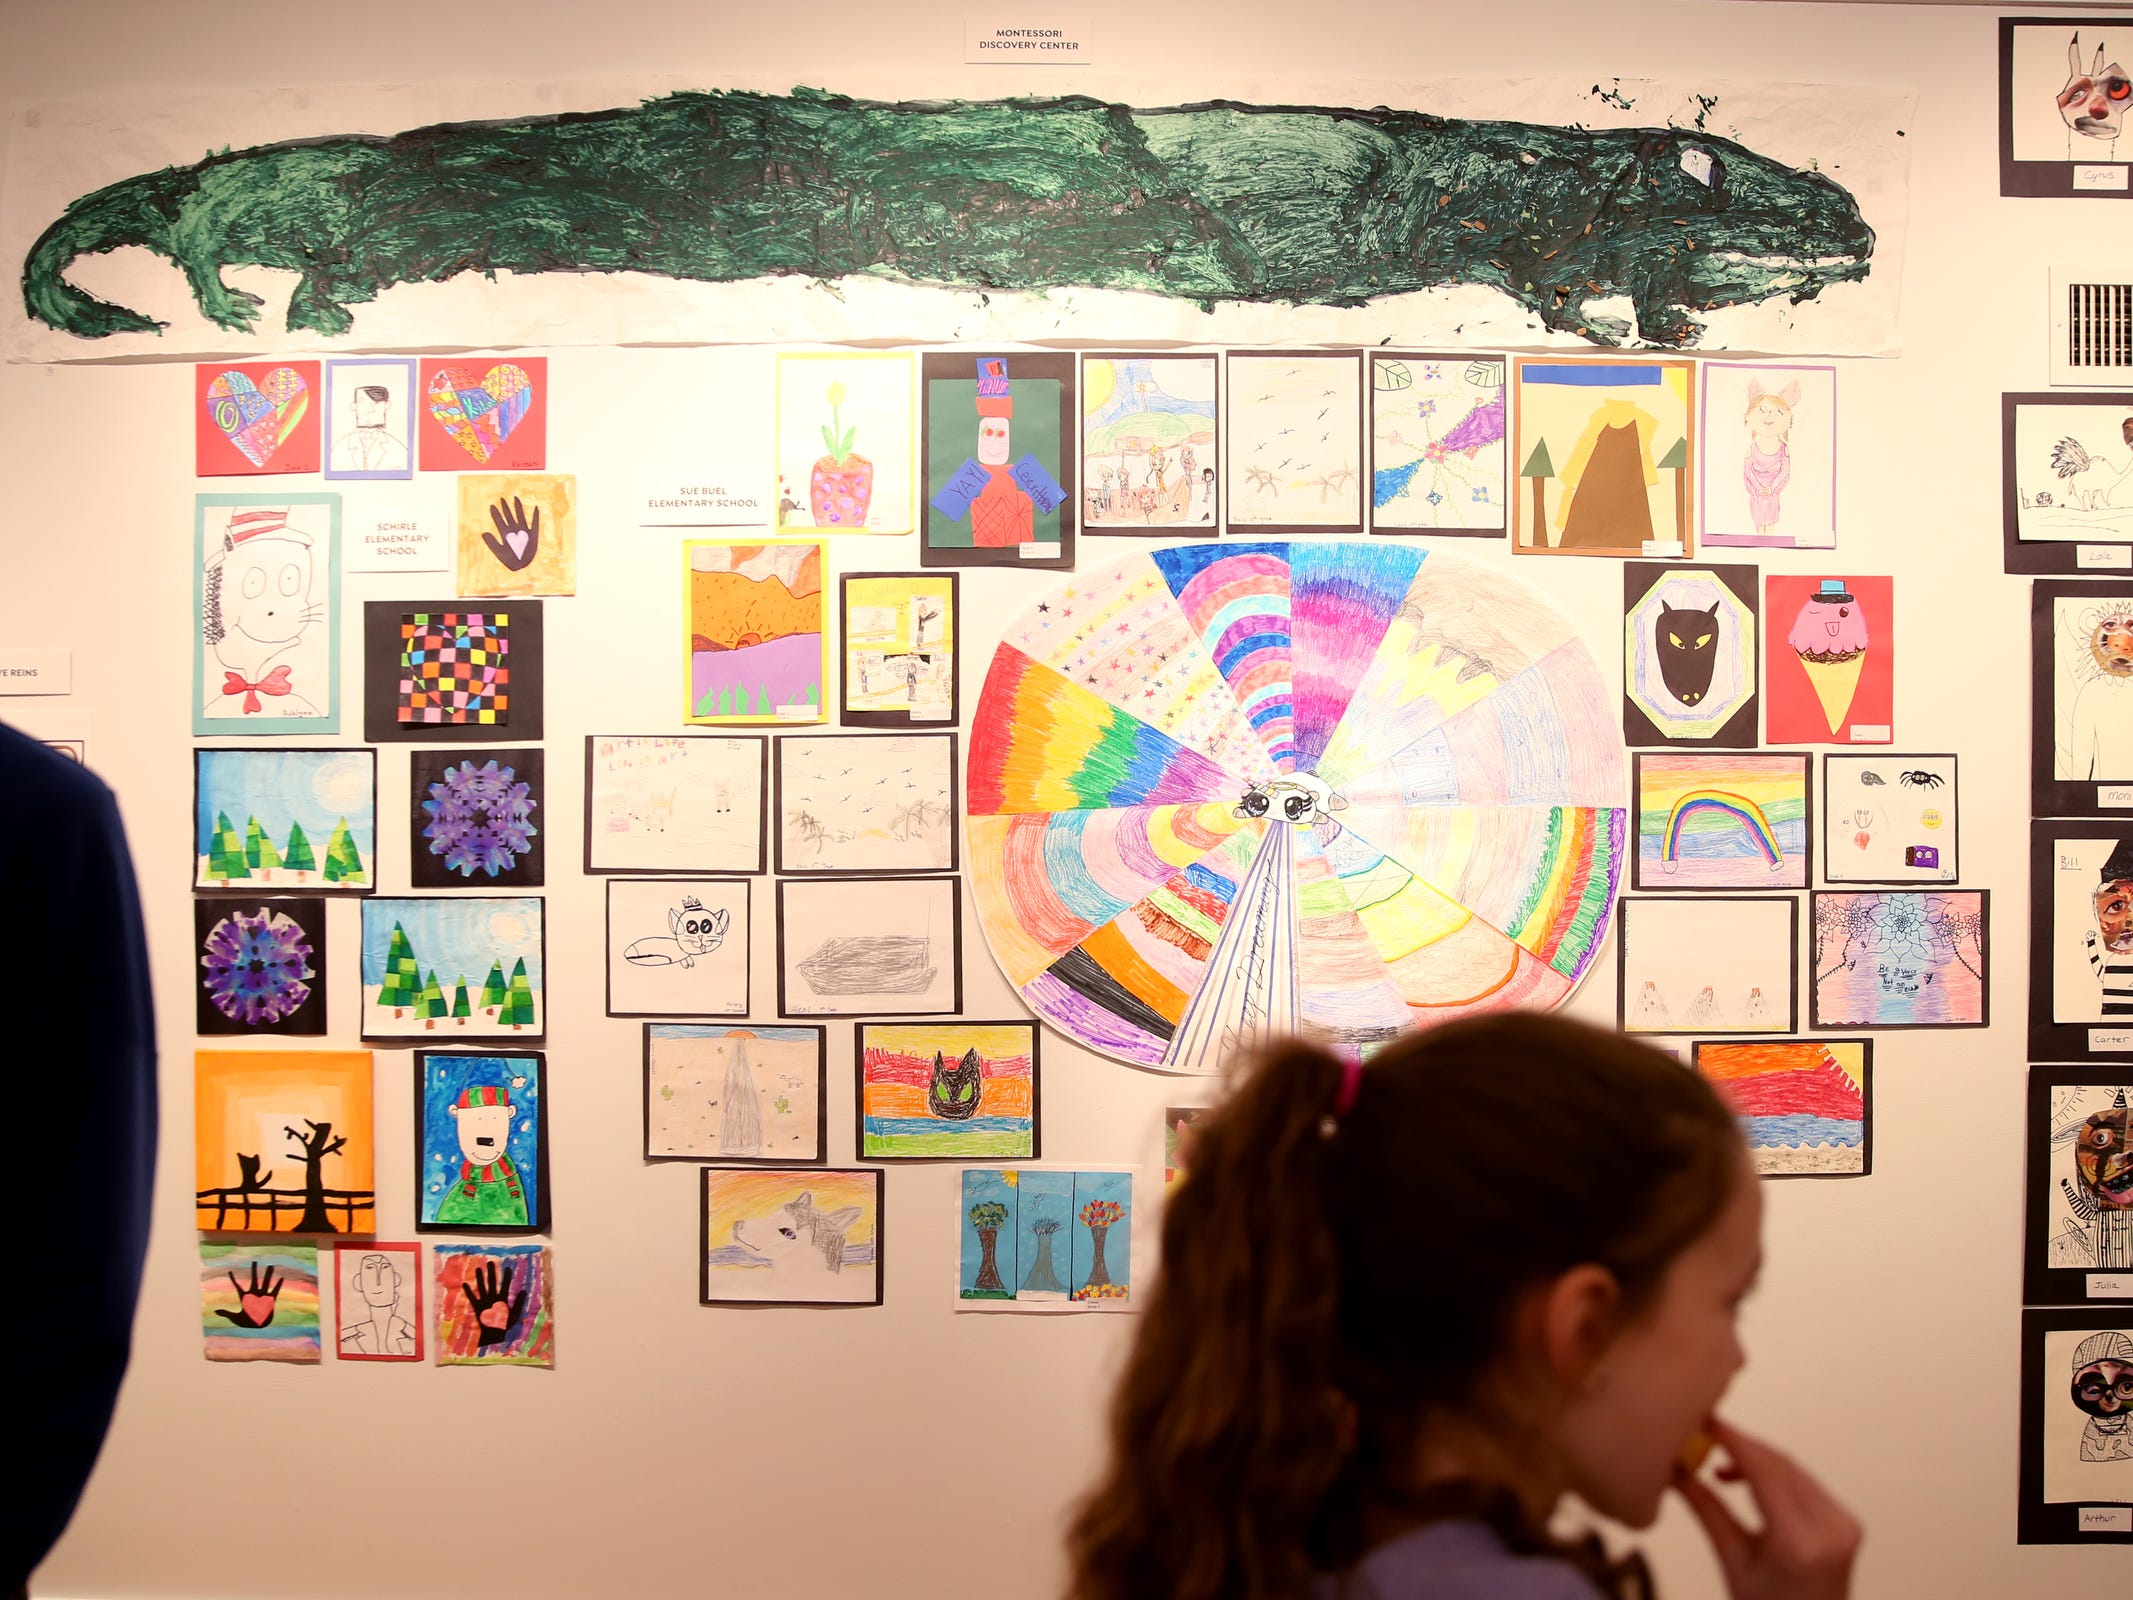 Art is on display during the awards reception for the 10th annual Young Artists' Showcase at the Bush Barn Art Center in Salem on March 9, 2019. The exhibit features artwork by more than 400 students in Marion, Polk and Yamhill counties and runs through April 20.